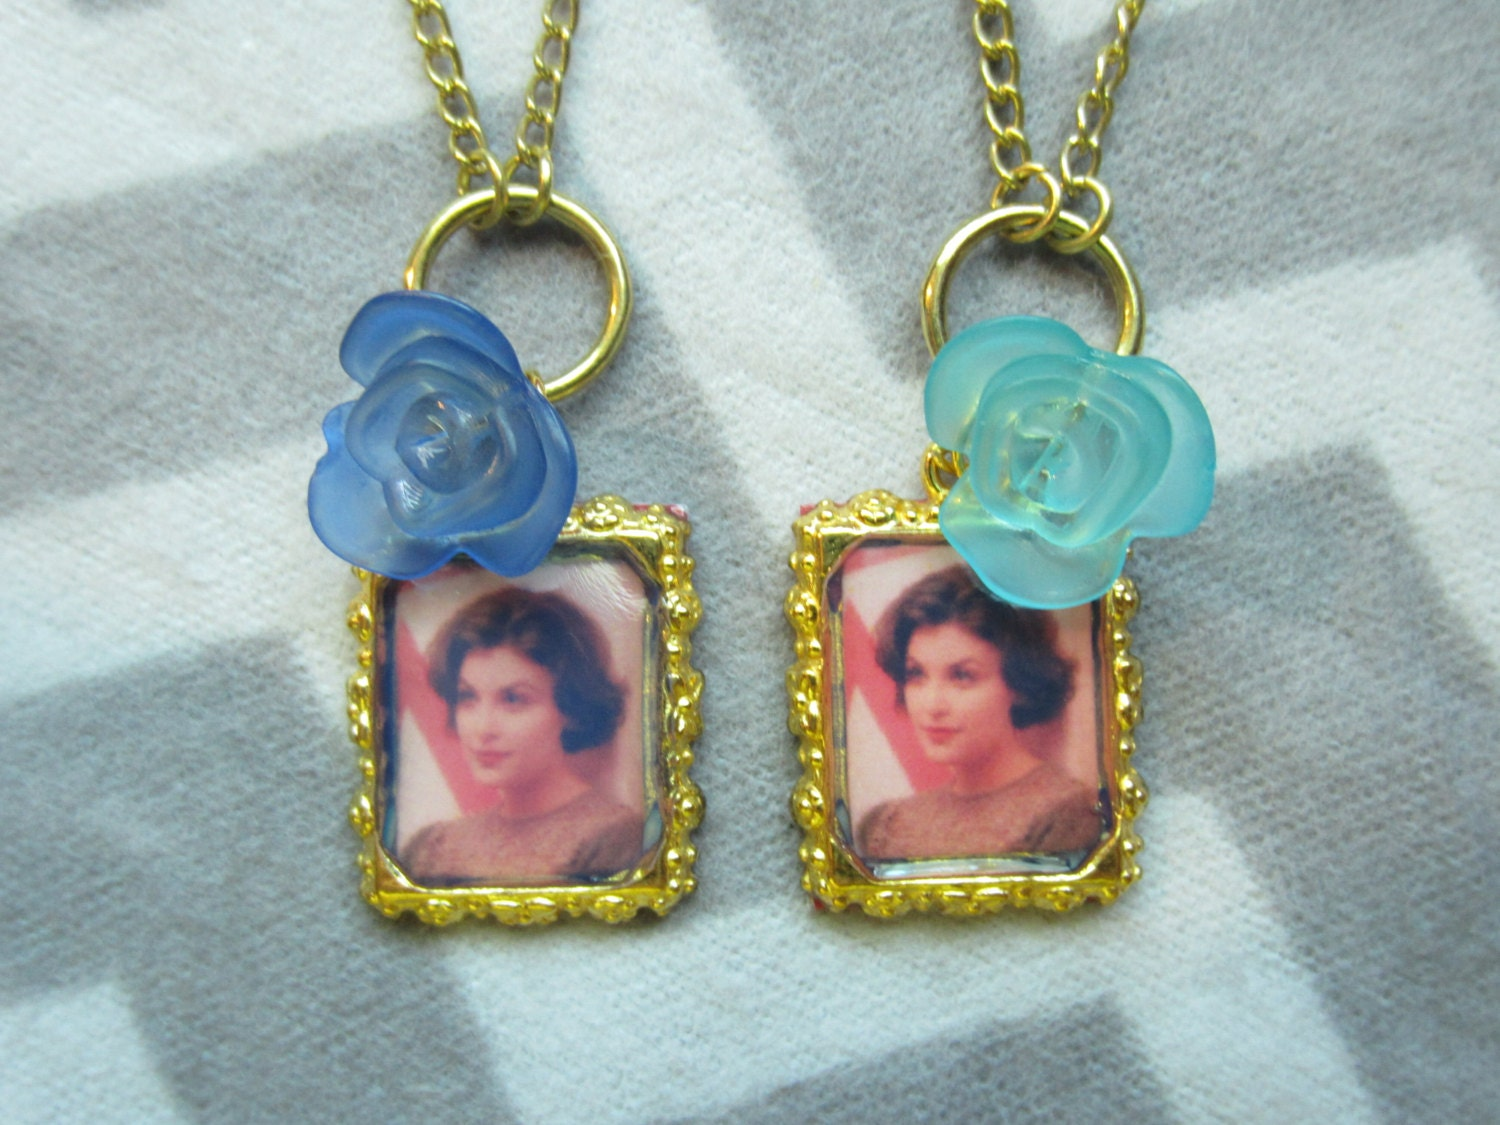 Audrey horne blue rose necklace inspired by by for Audry rose jewelry reviews